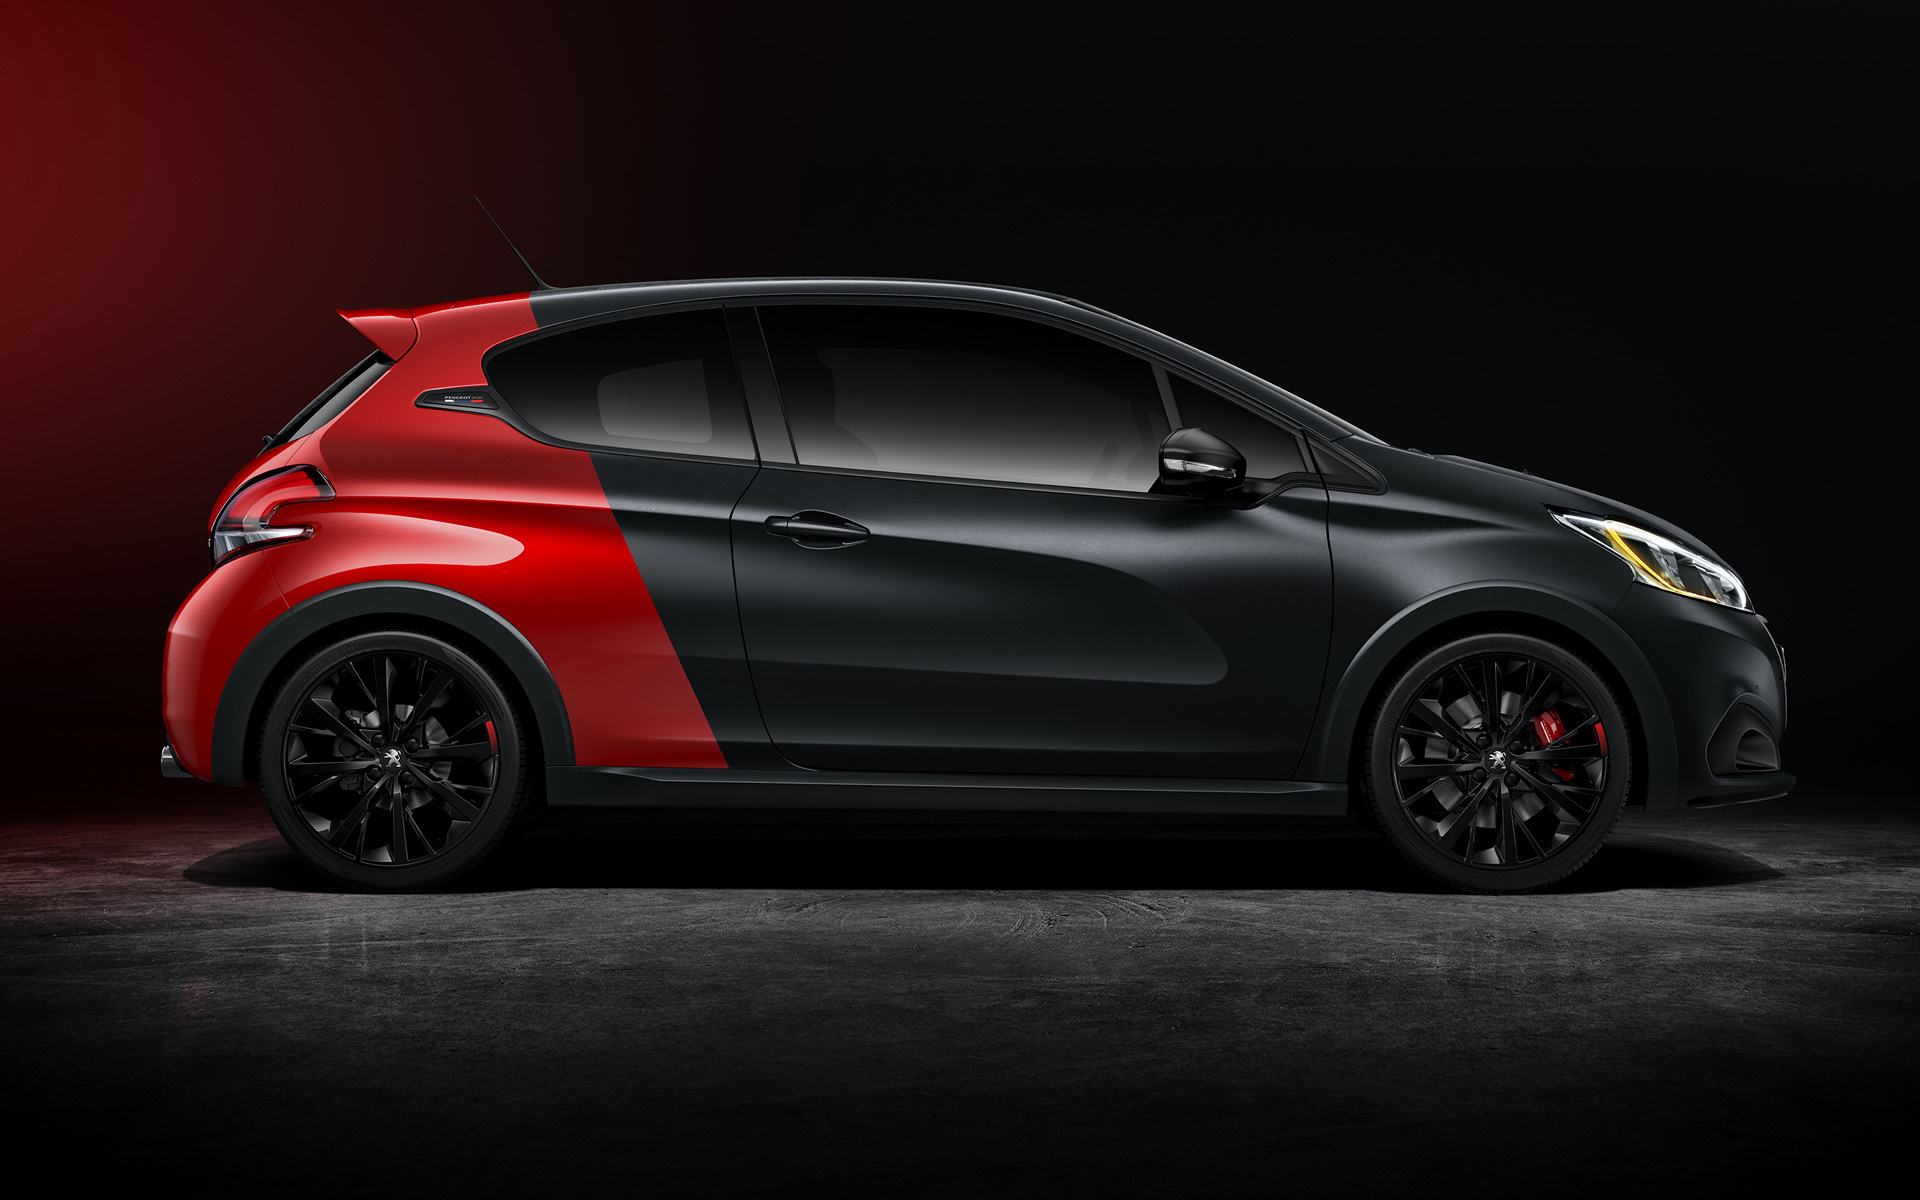 2015 Peugeot 208 GTi by Peugeot Sport - Wallpapers and HD ...